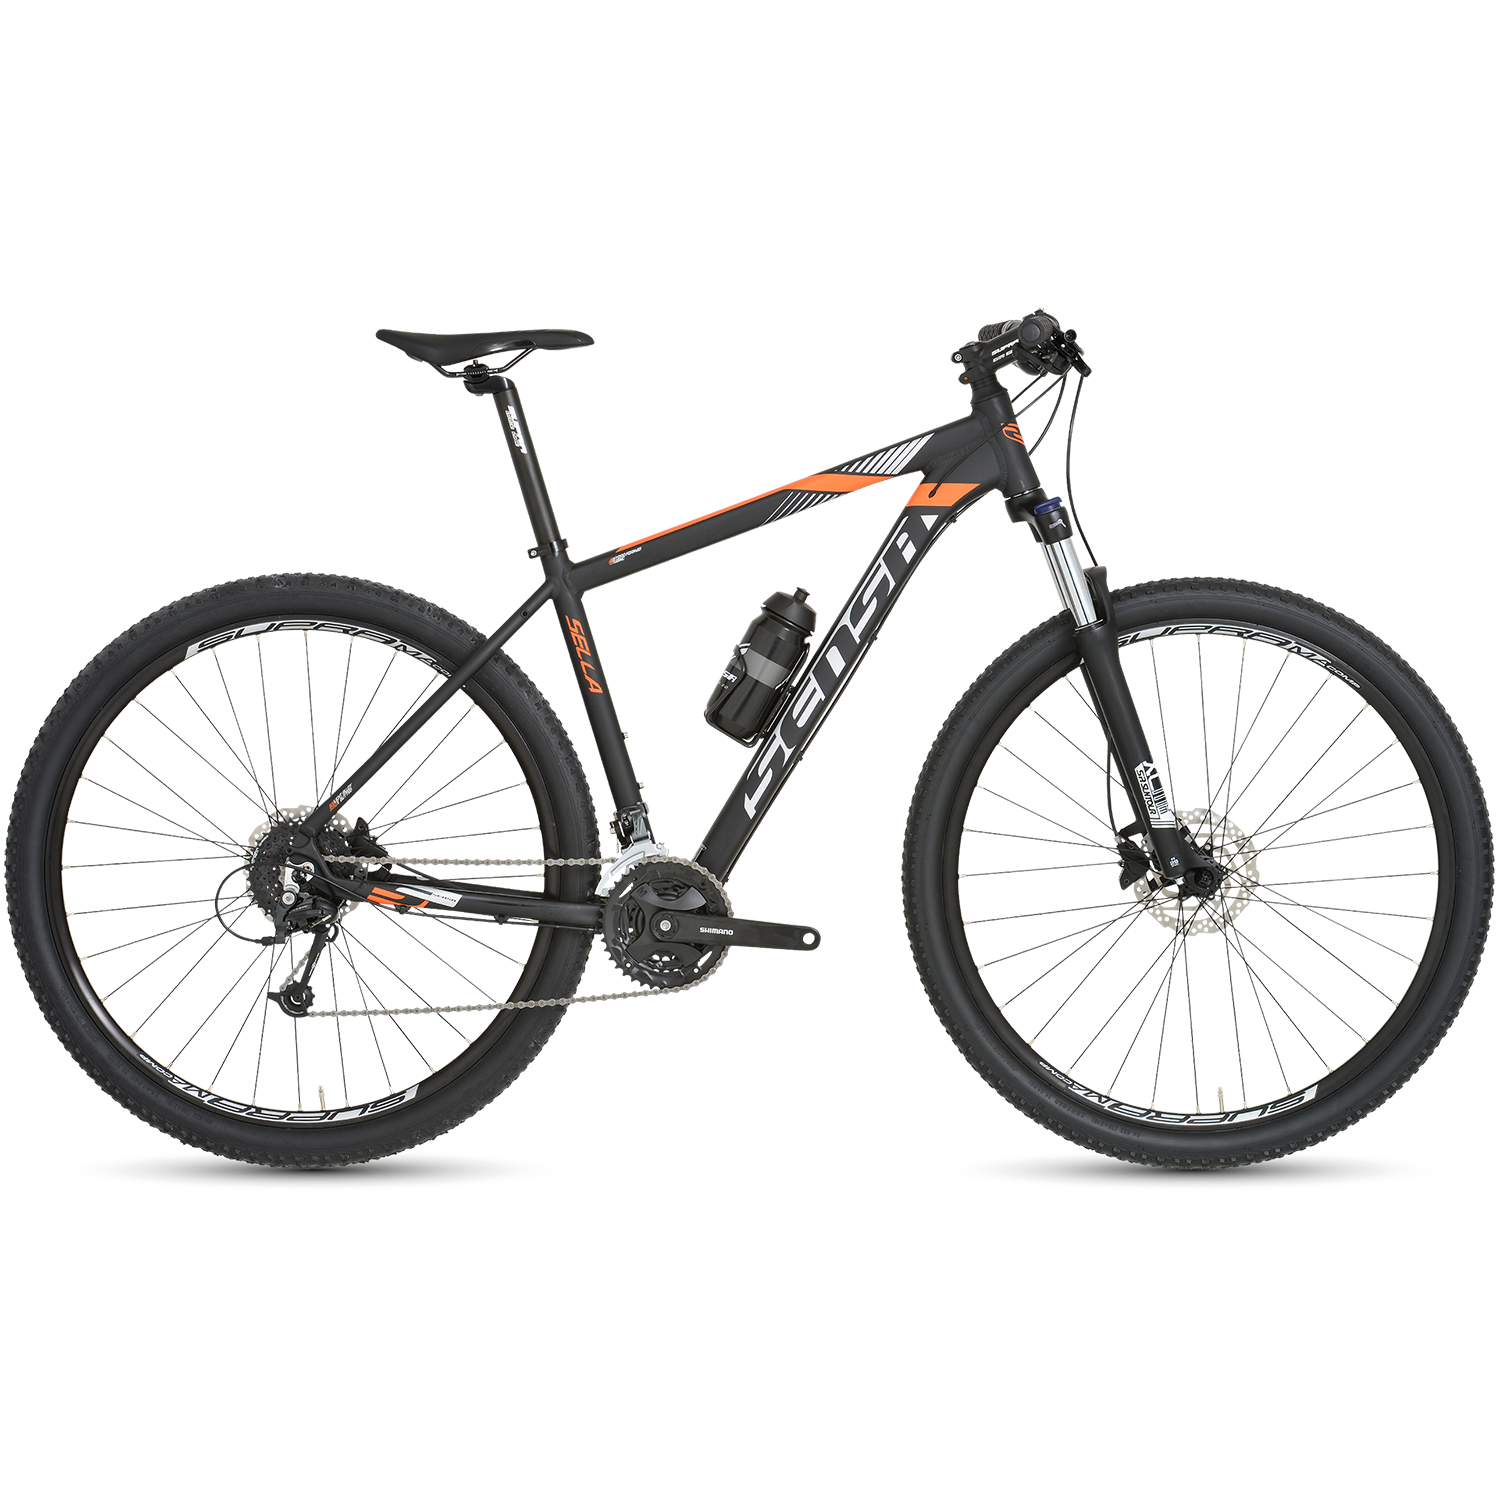 "Sensa Sella 27 27.5"" Mountain Bike - 2019"